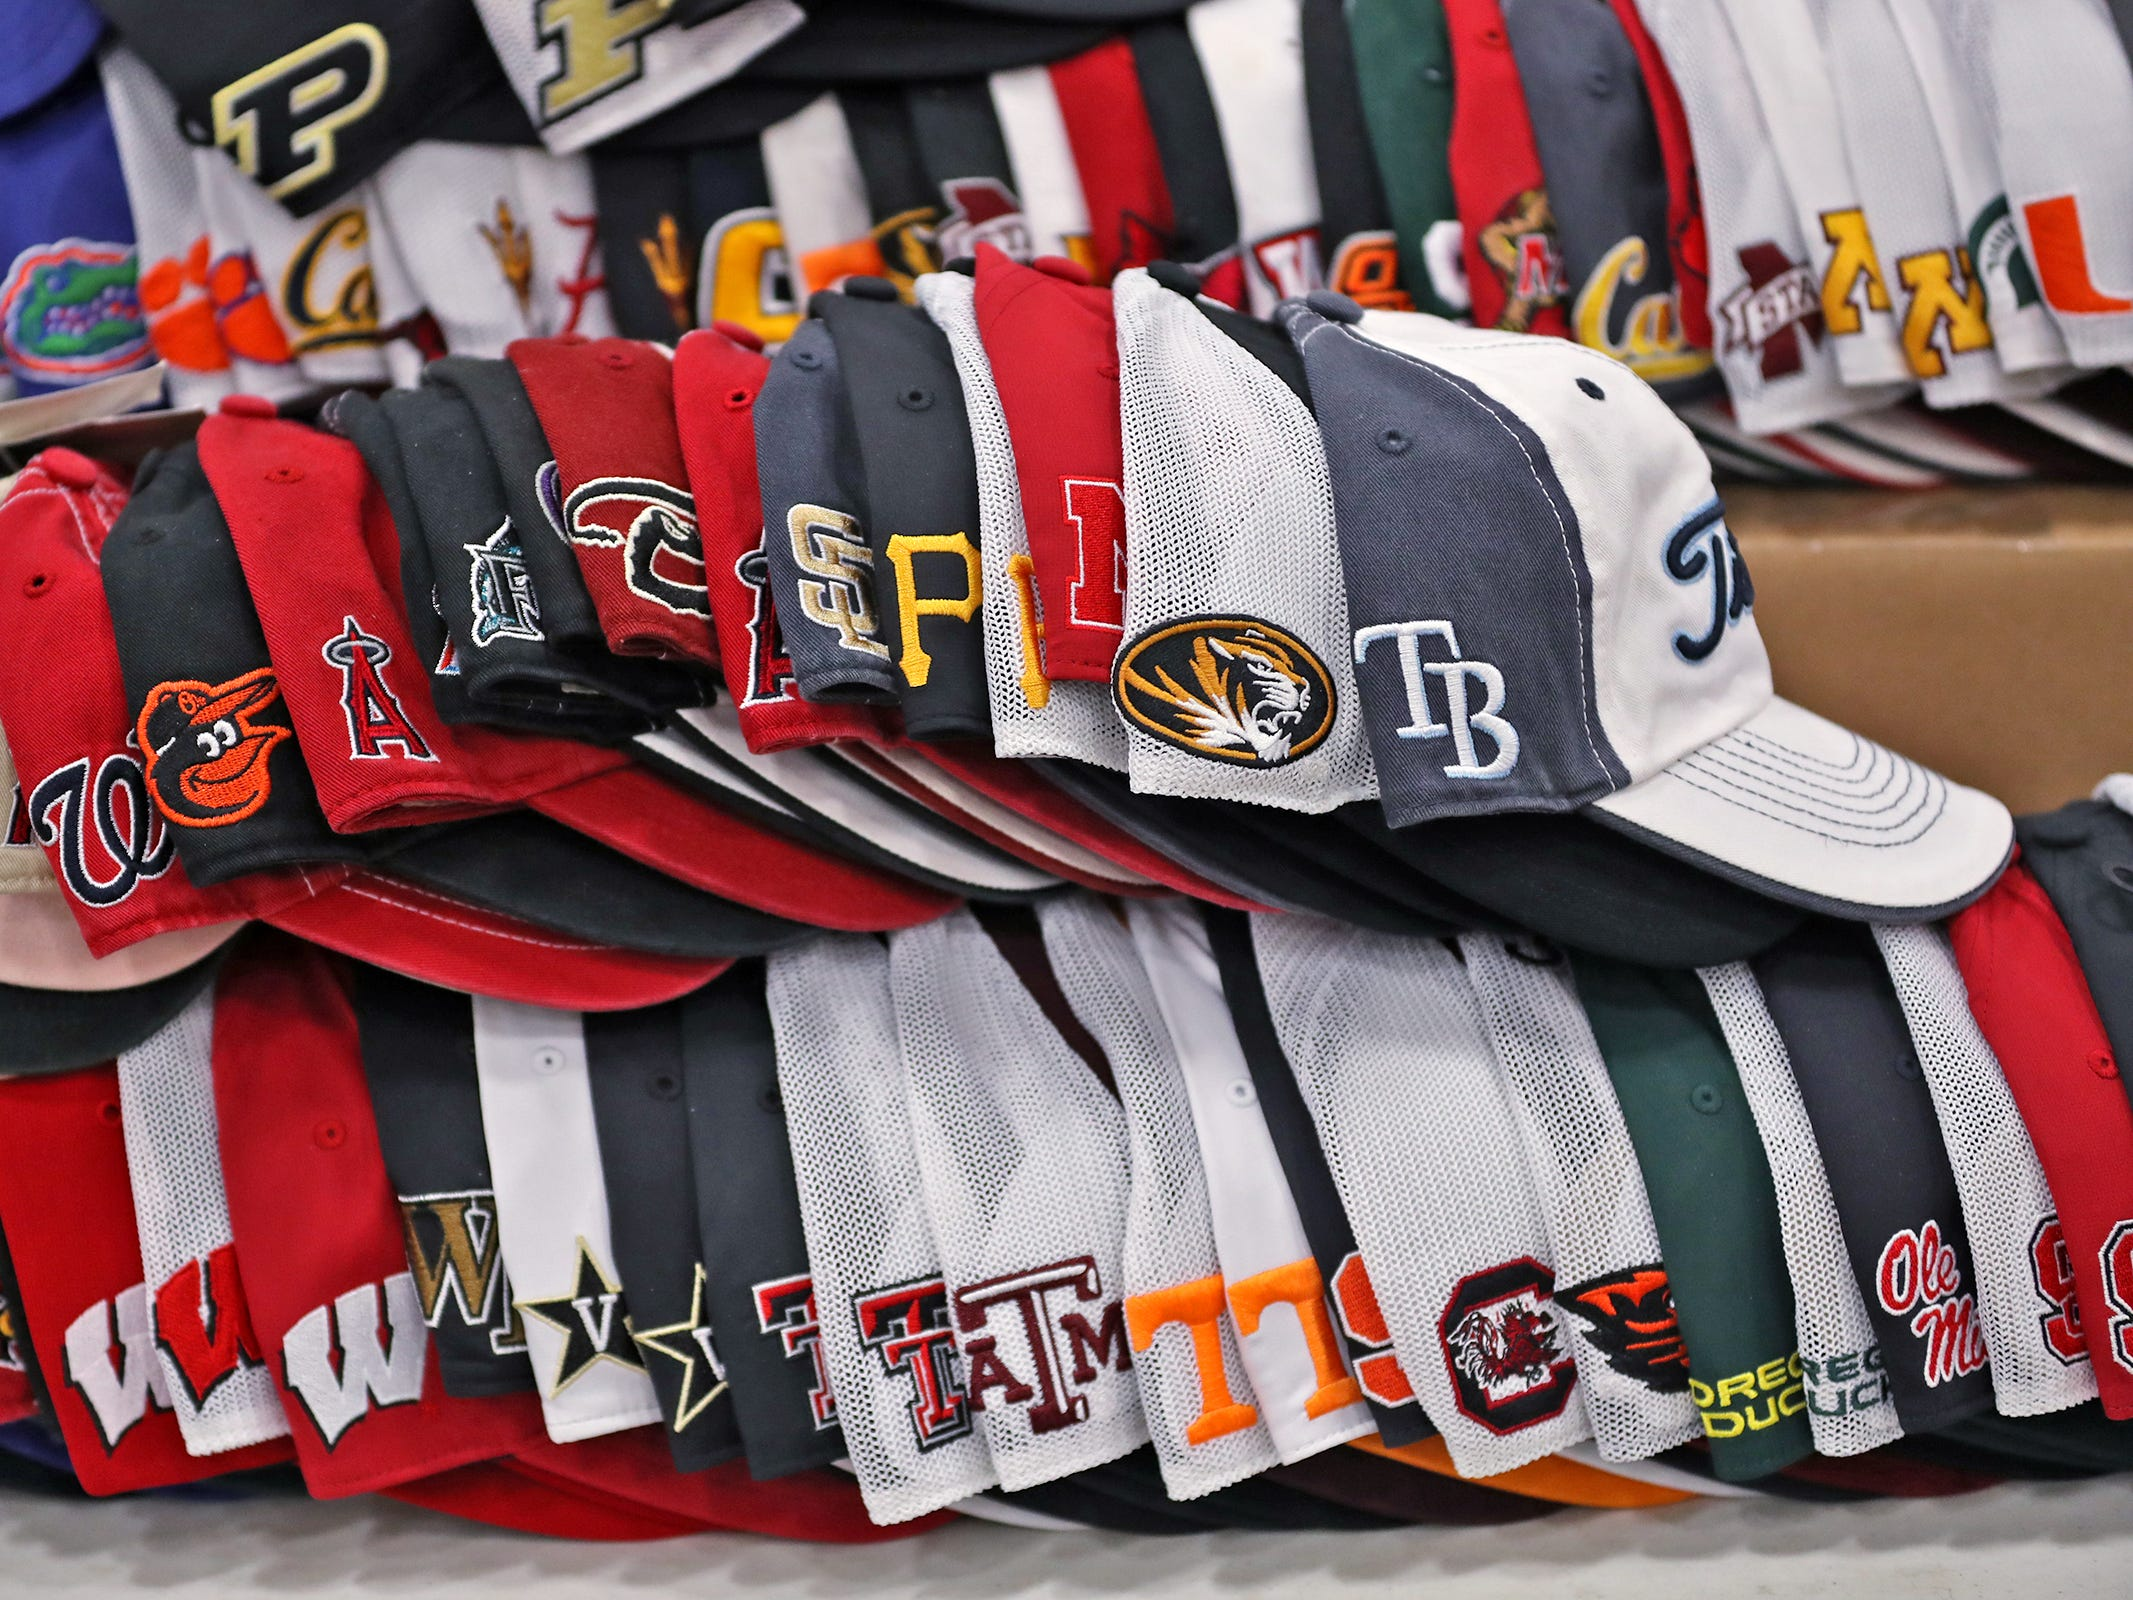 Hats with college logos are seen at the Golfmart Kentucky booth during the Indy Golf Expo at the Indiana State Fairgrounds, Sunday, Jan. 20, 2019.